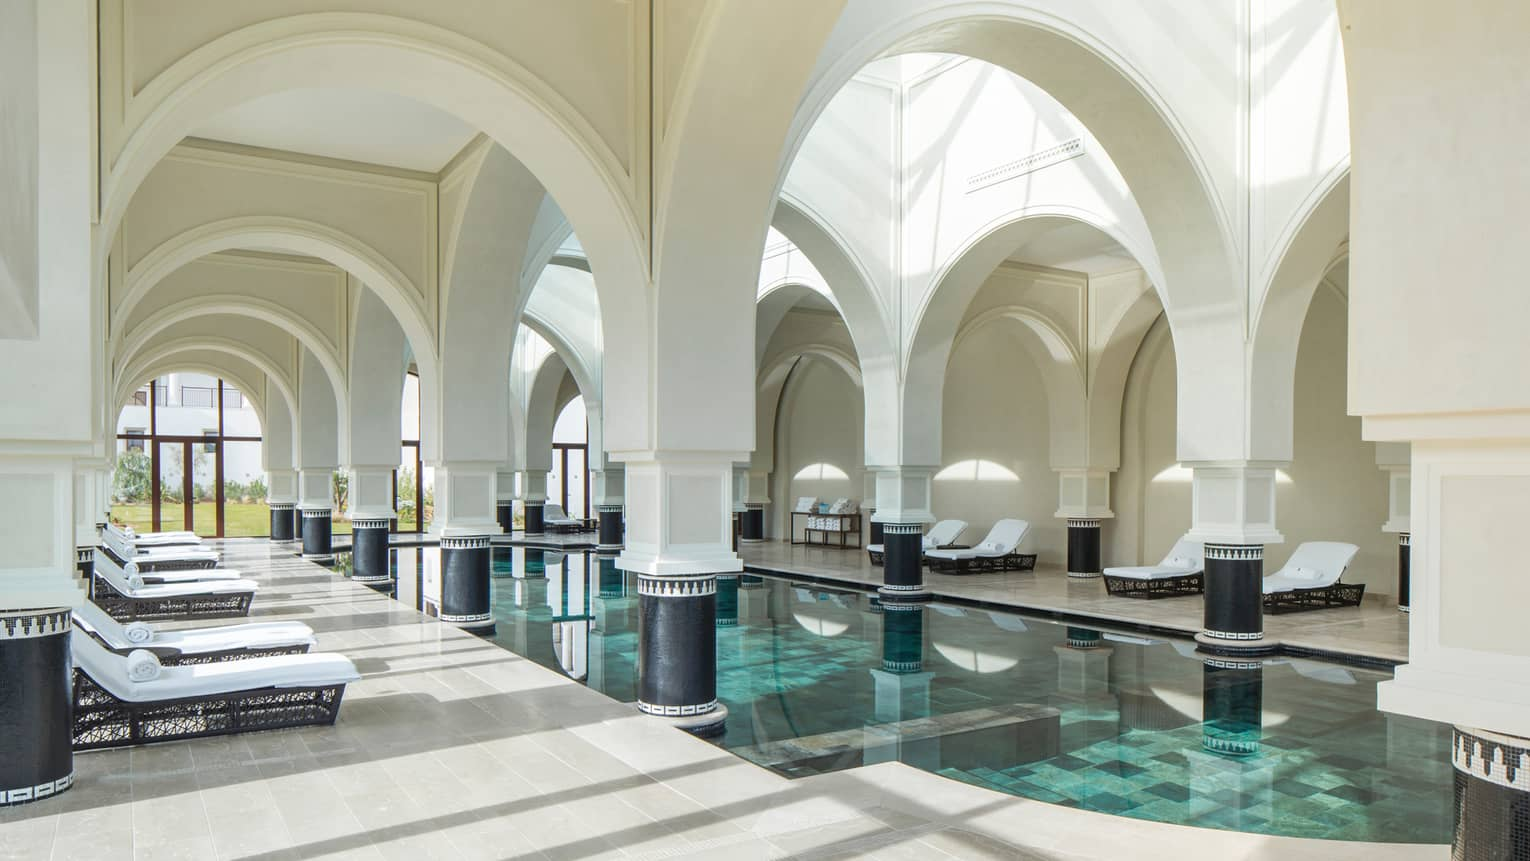 Arched white pillars, soaring ceilings over sunny indoor swimming pools, lounge chairs